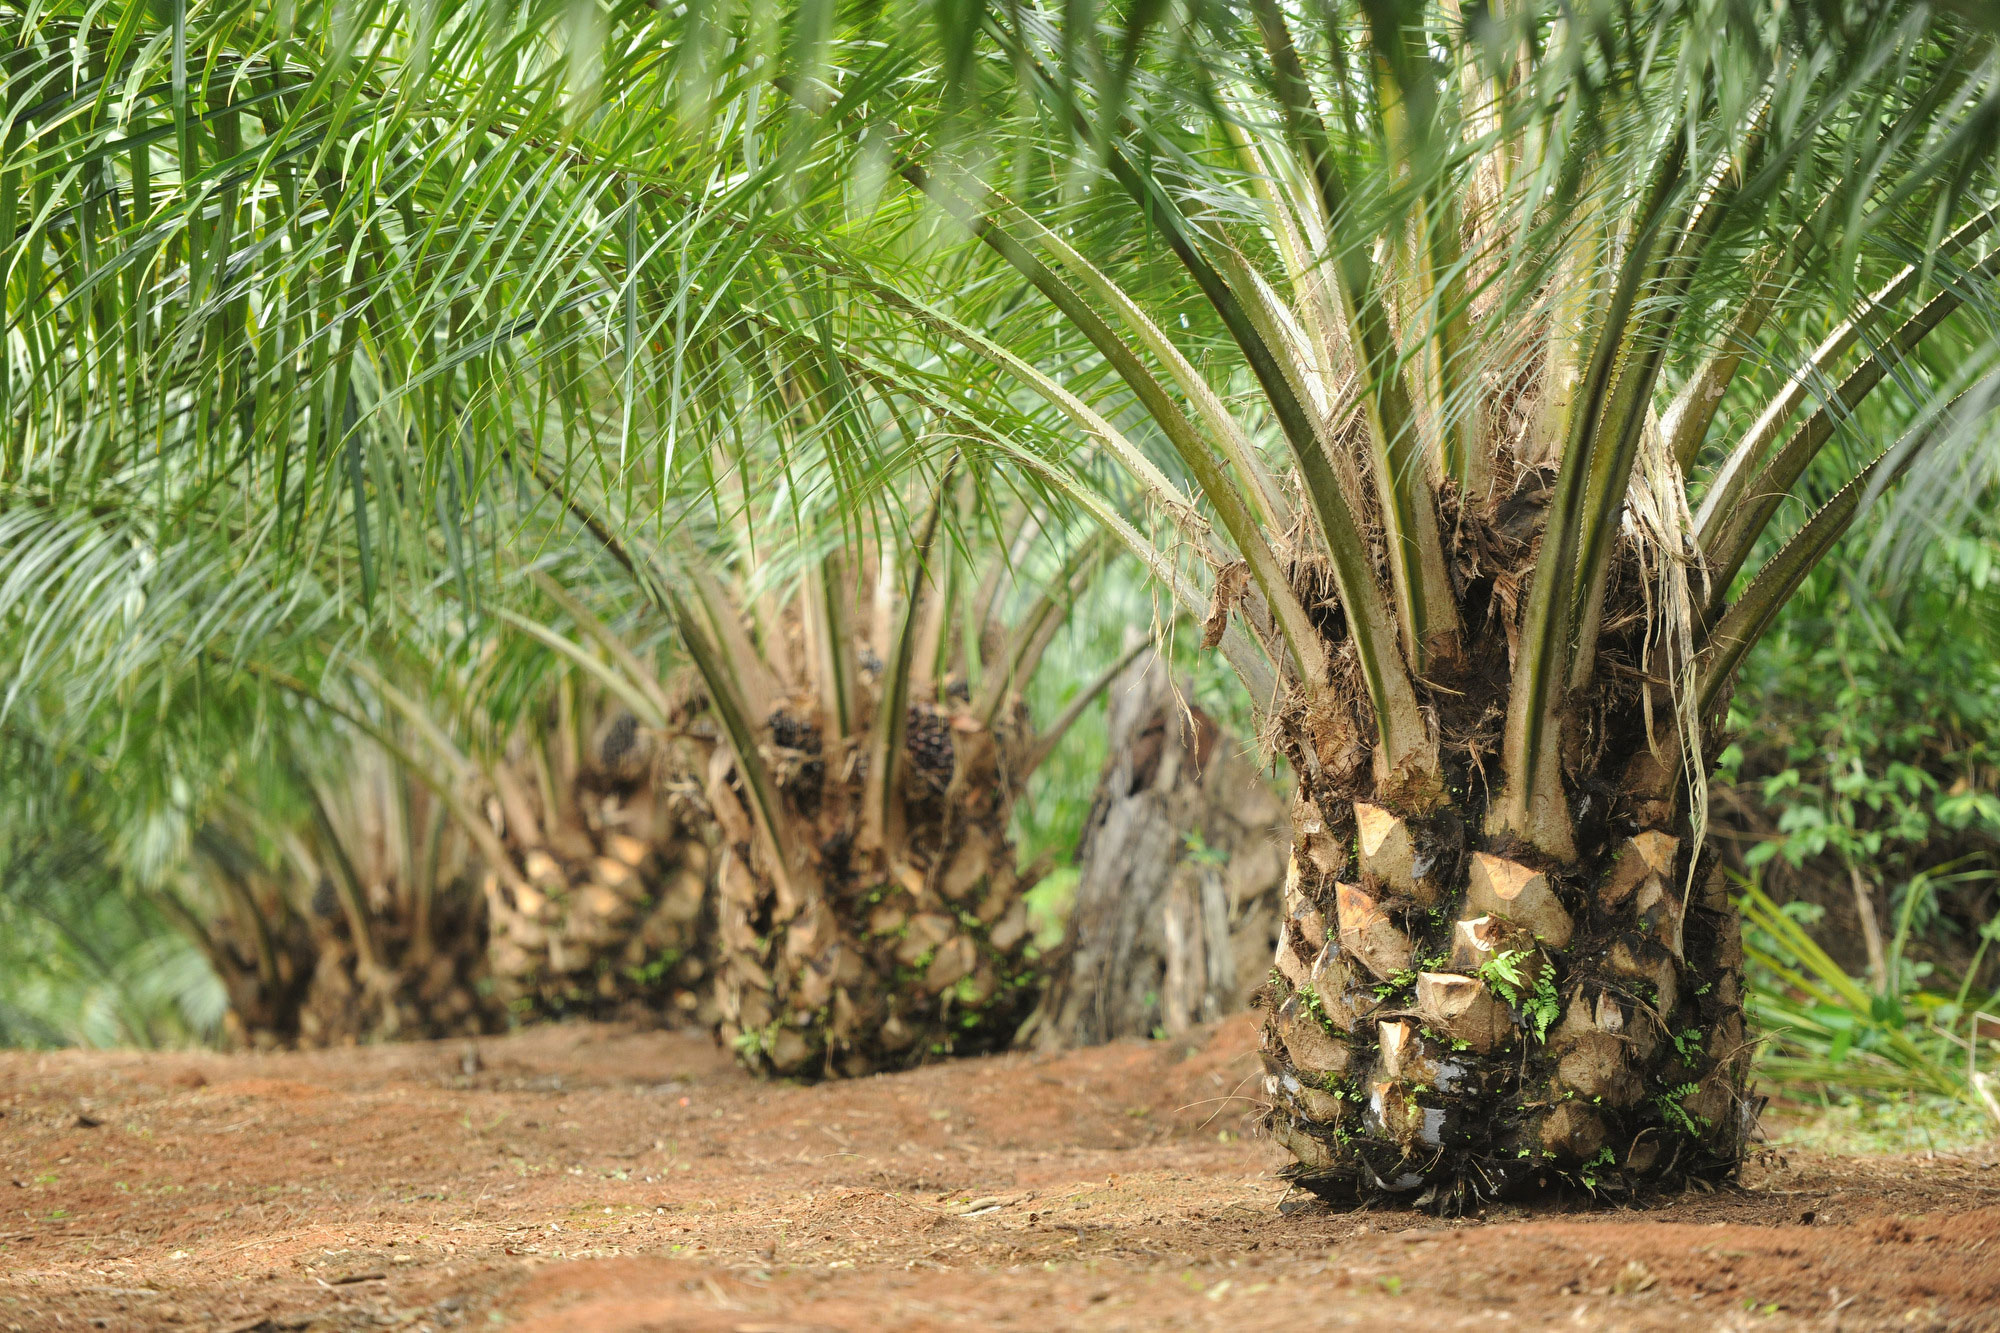 UNDP : Palm Oil Not Cause of Deforestation